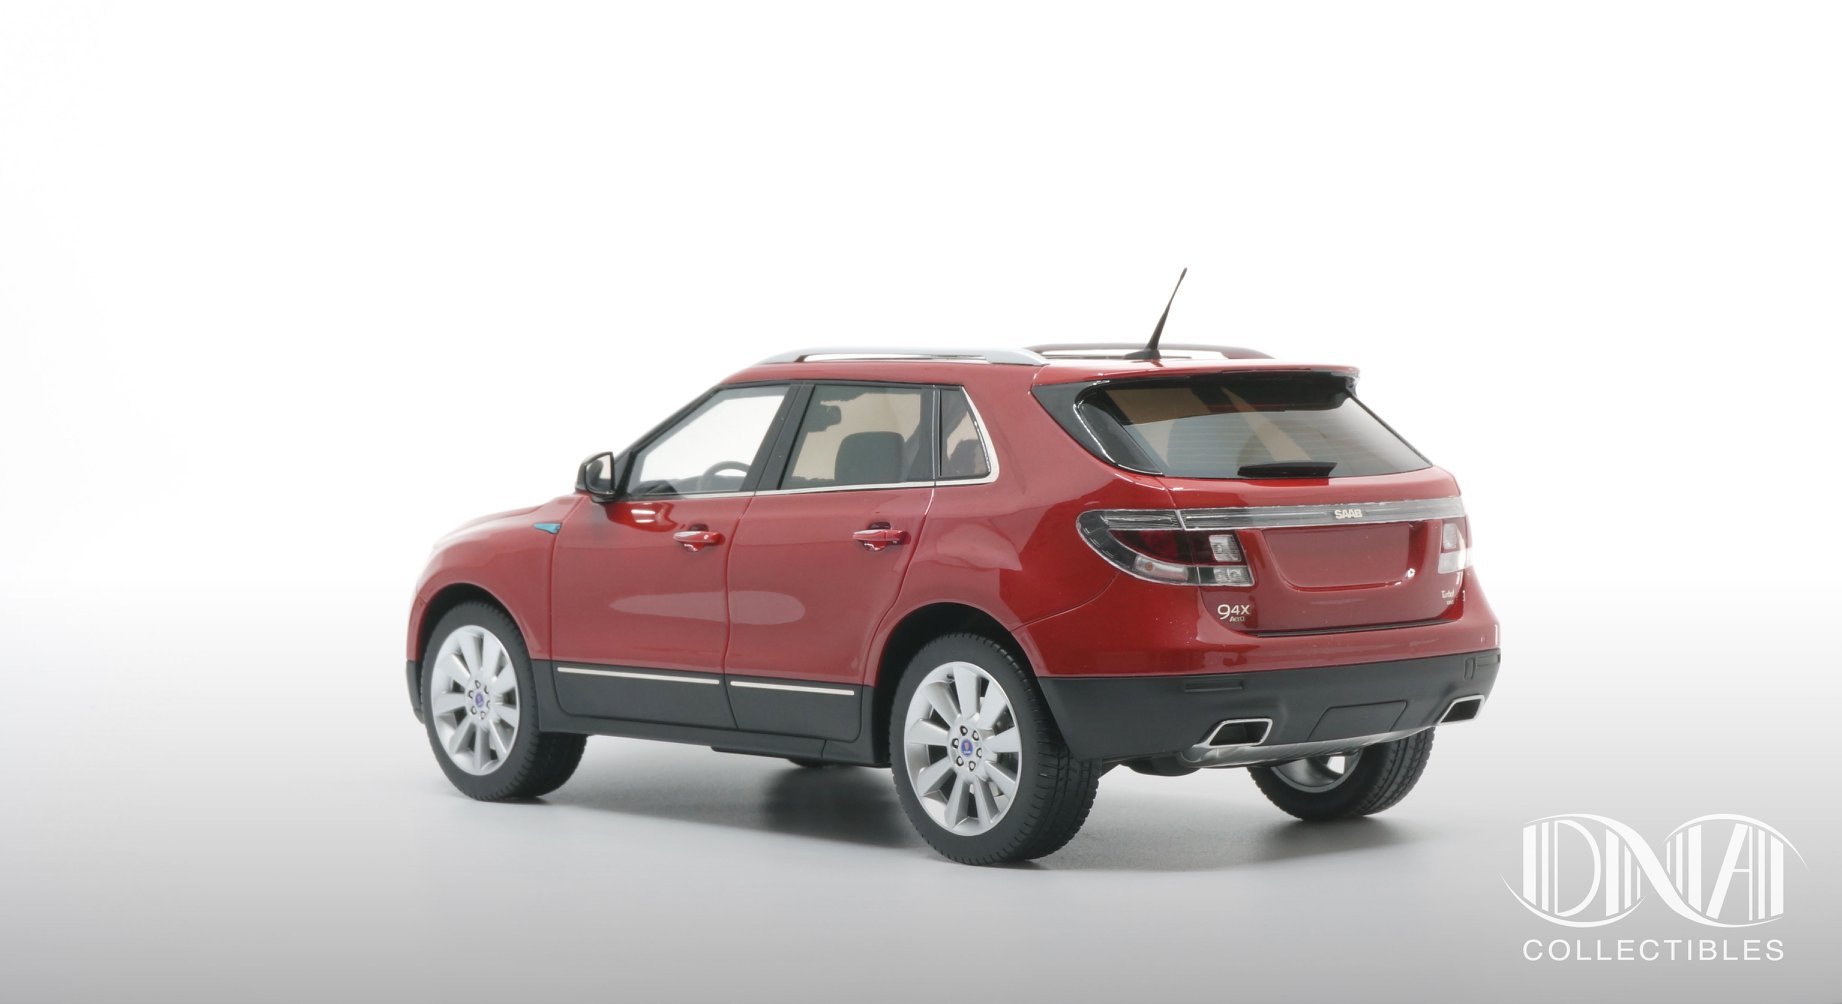 saab-9-4x-dna-collectiles-dna000032-arriere